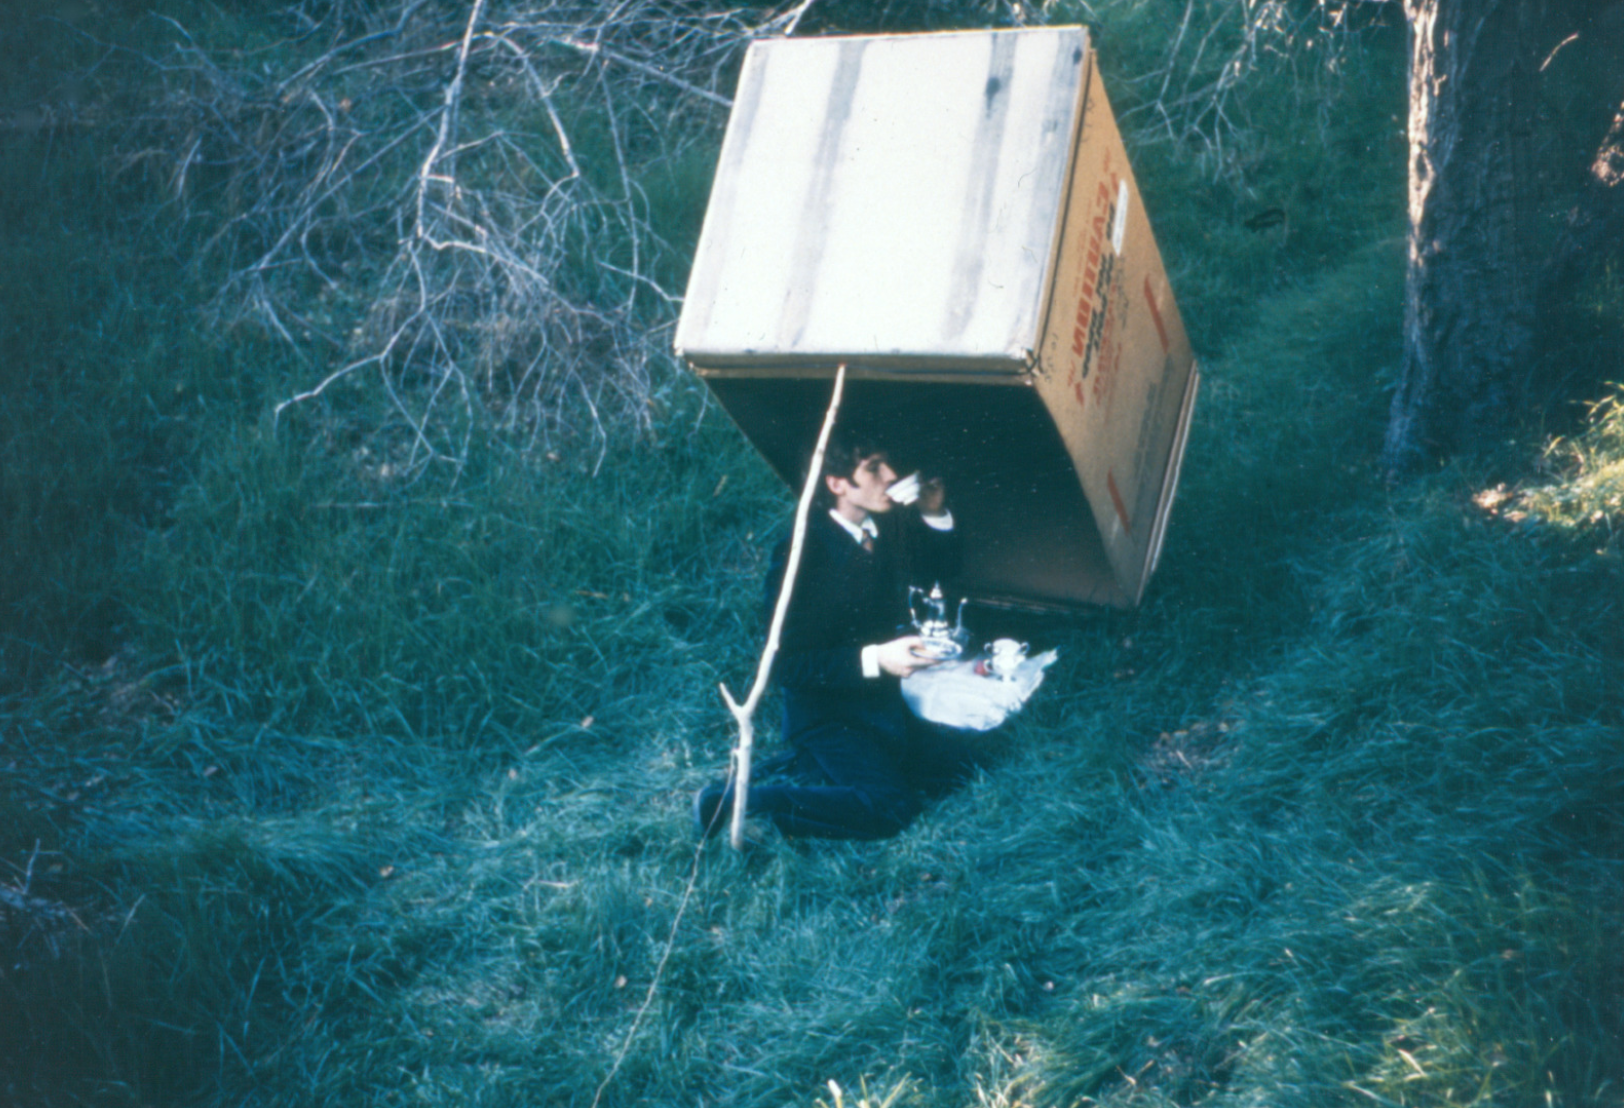 Bas Jan Ader Untitled (Tea party), 1972